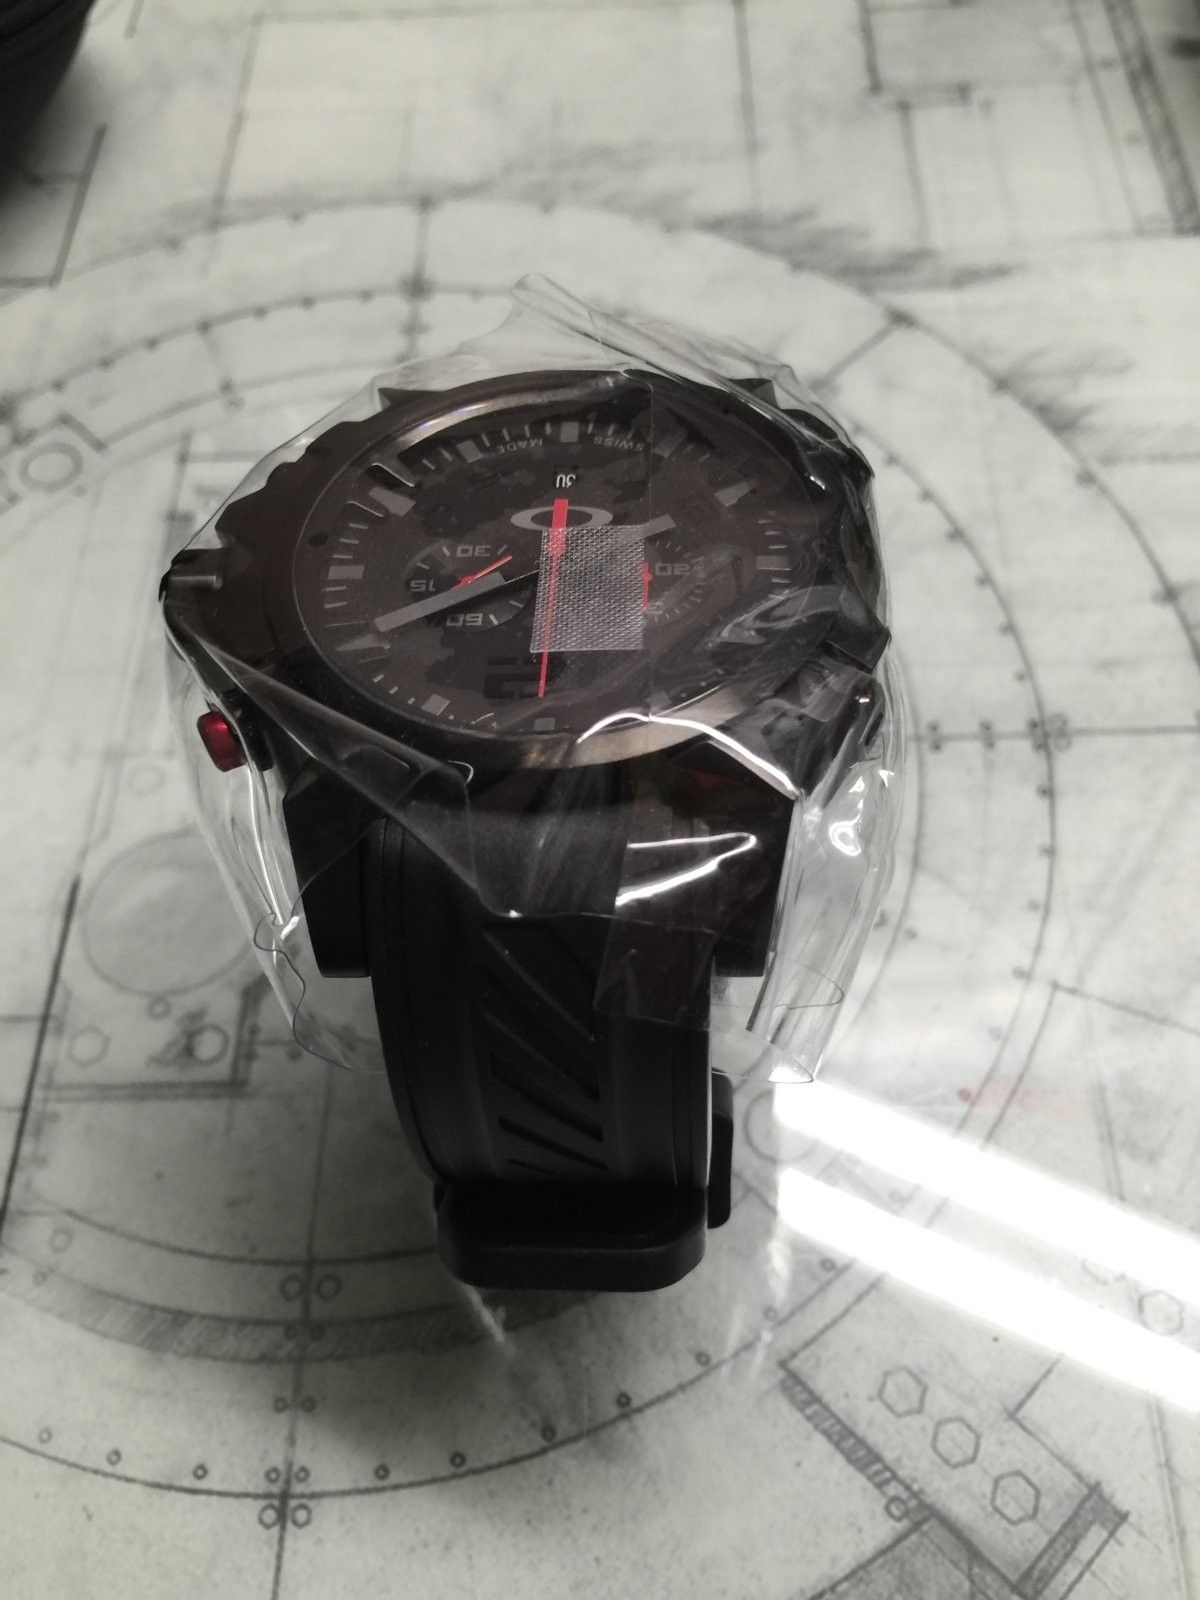 BNIB Stealth Double Tap $500 shipped USA - image.jpeg